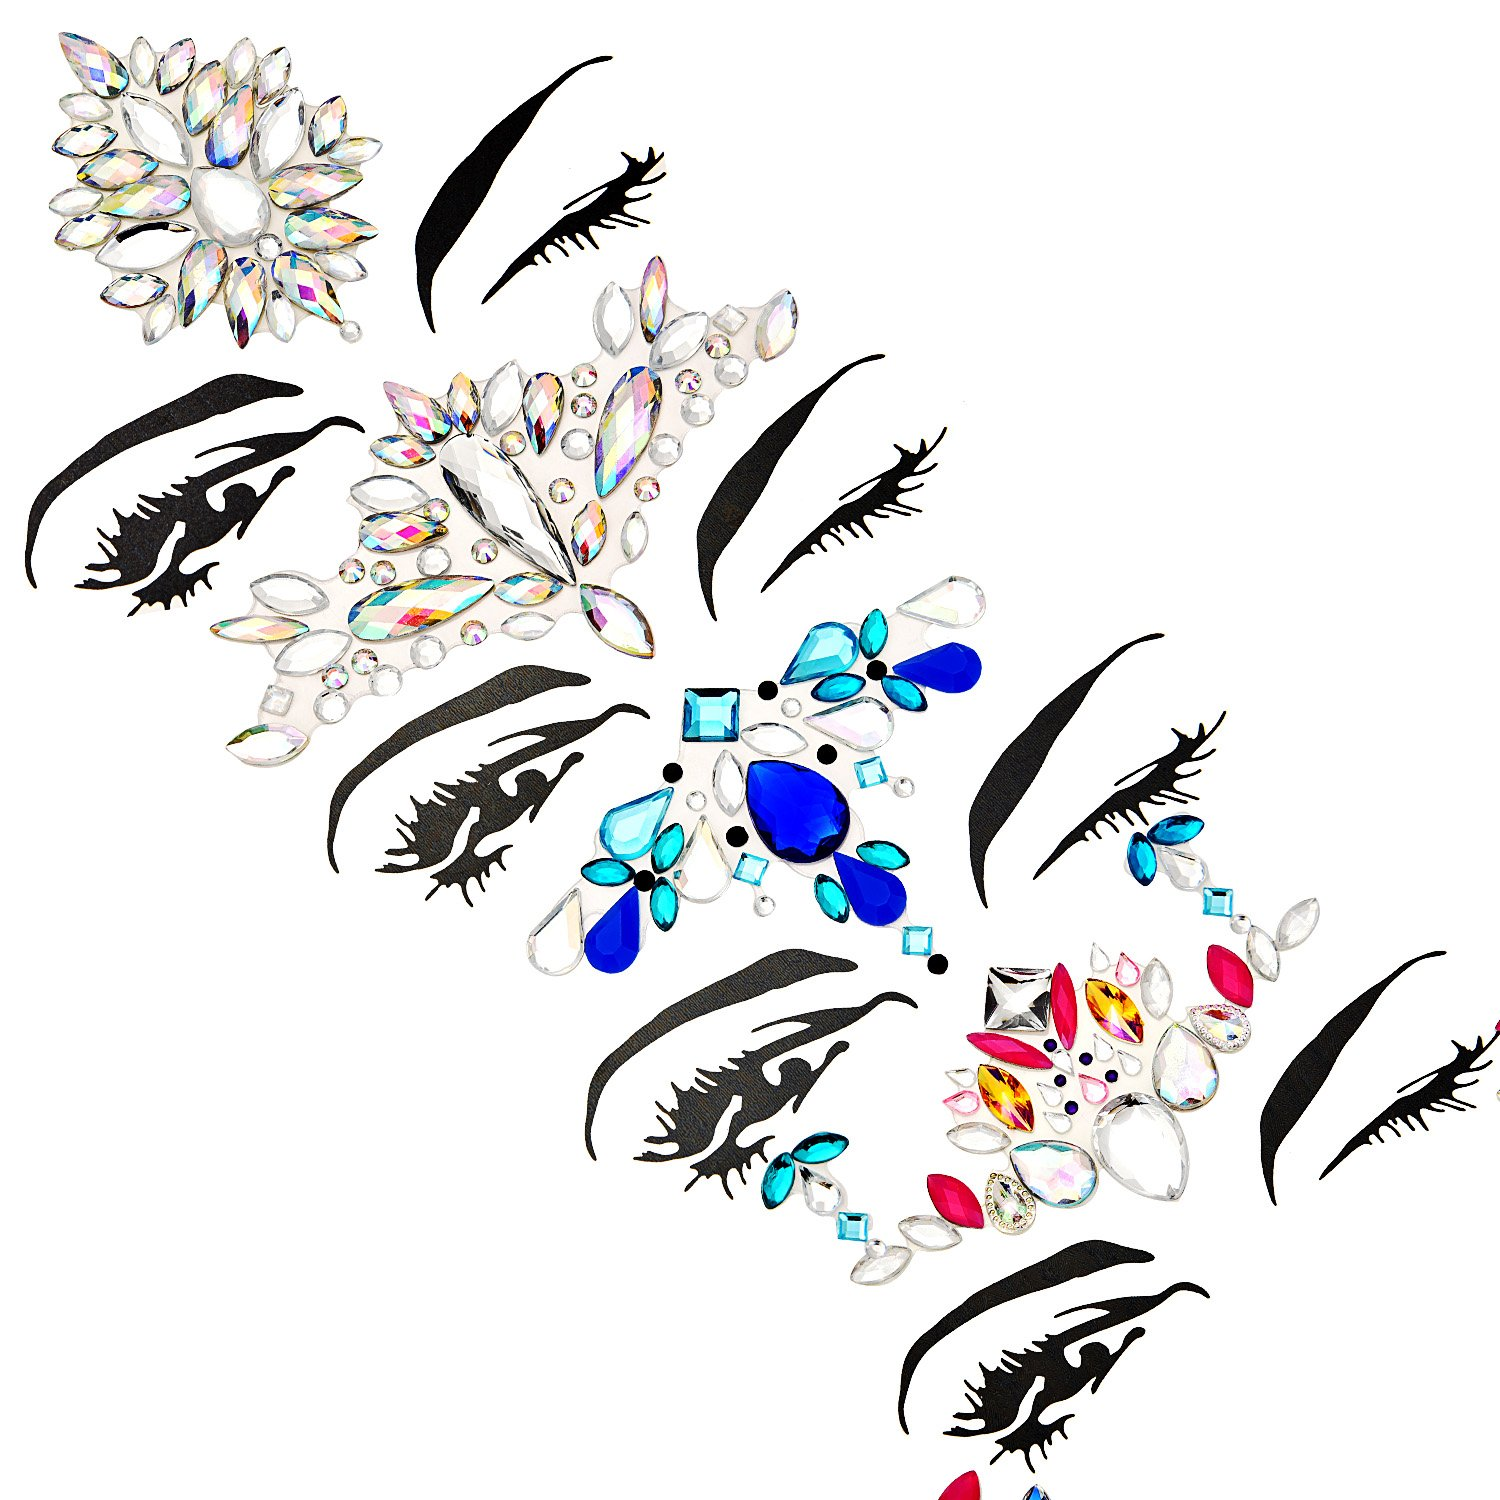 TOODOO 8 Sets Face Gems Rhinestone Colorful Sticker Tattoo Jewelry Stick on Face Festival Jewels for Forehead Body Decorations (Style 1) by TOODOO (Image #4)